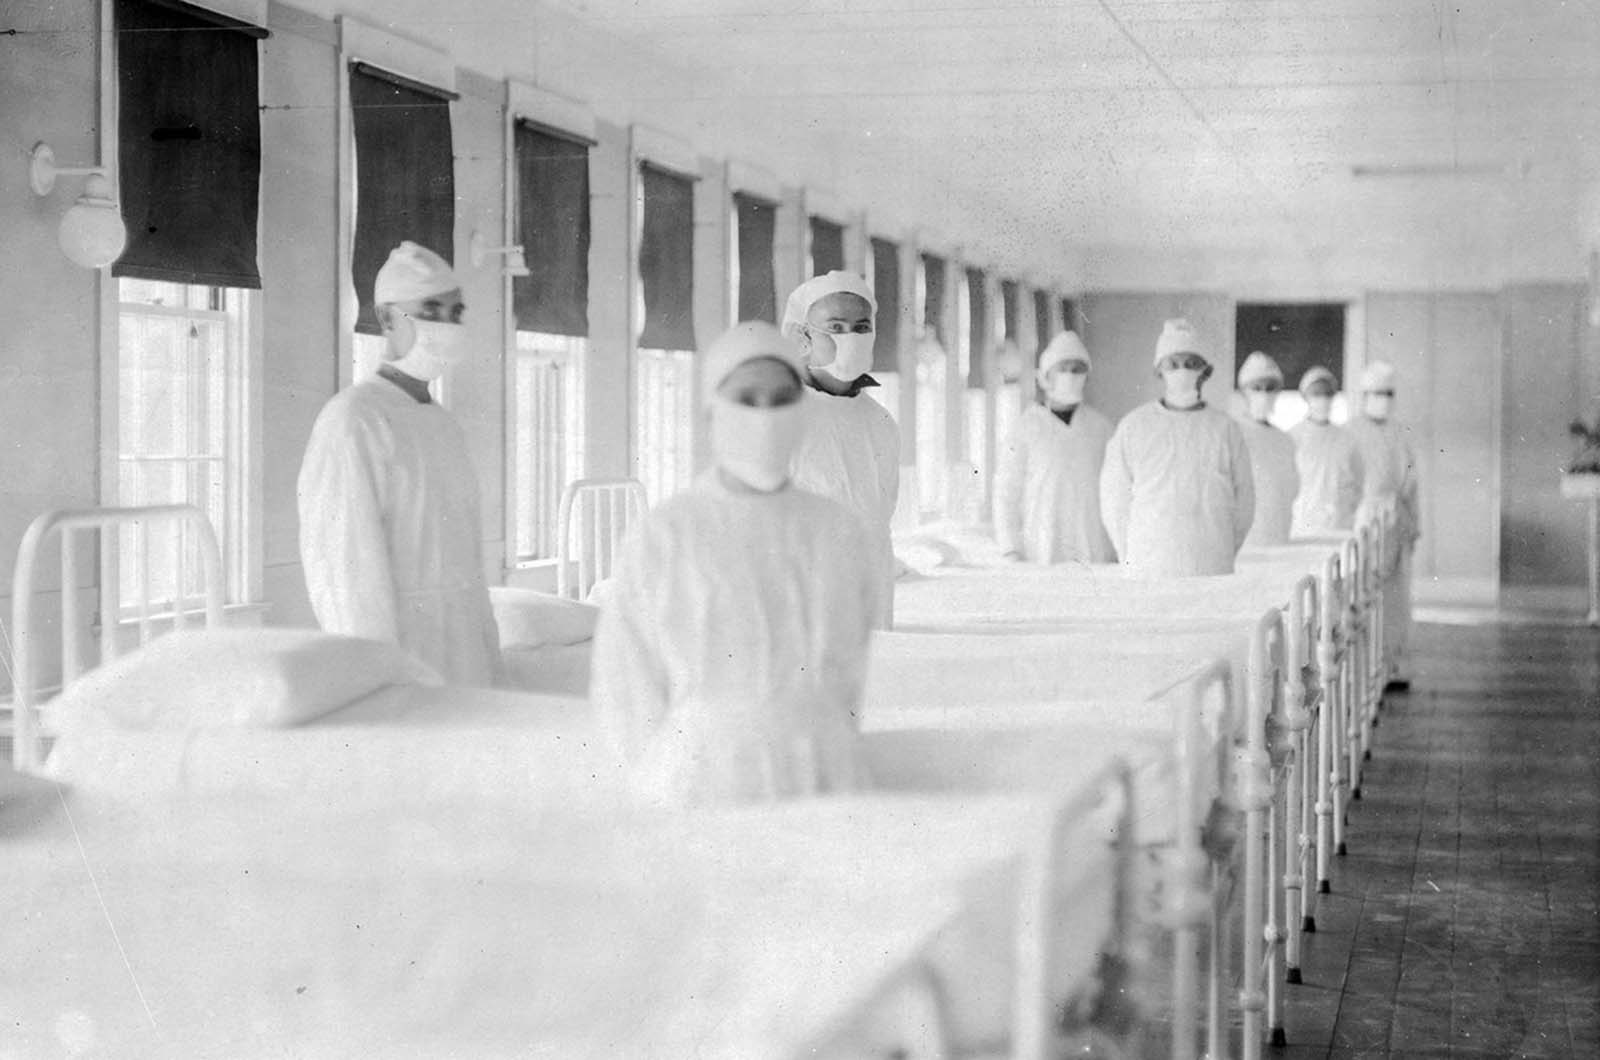 Corpsmen in caps and gowns are ready to attend patients in the influenza ward of a U.S. Navy hospital, in Mare Island, California, on December 10, 1918.